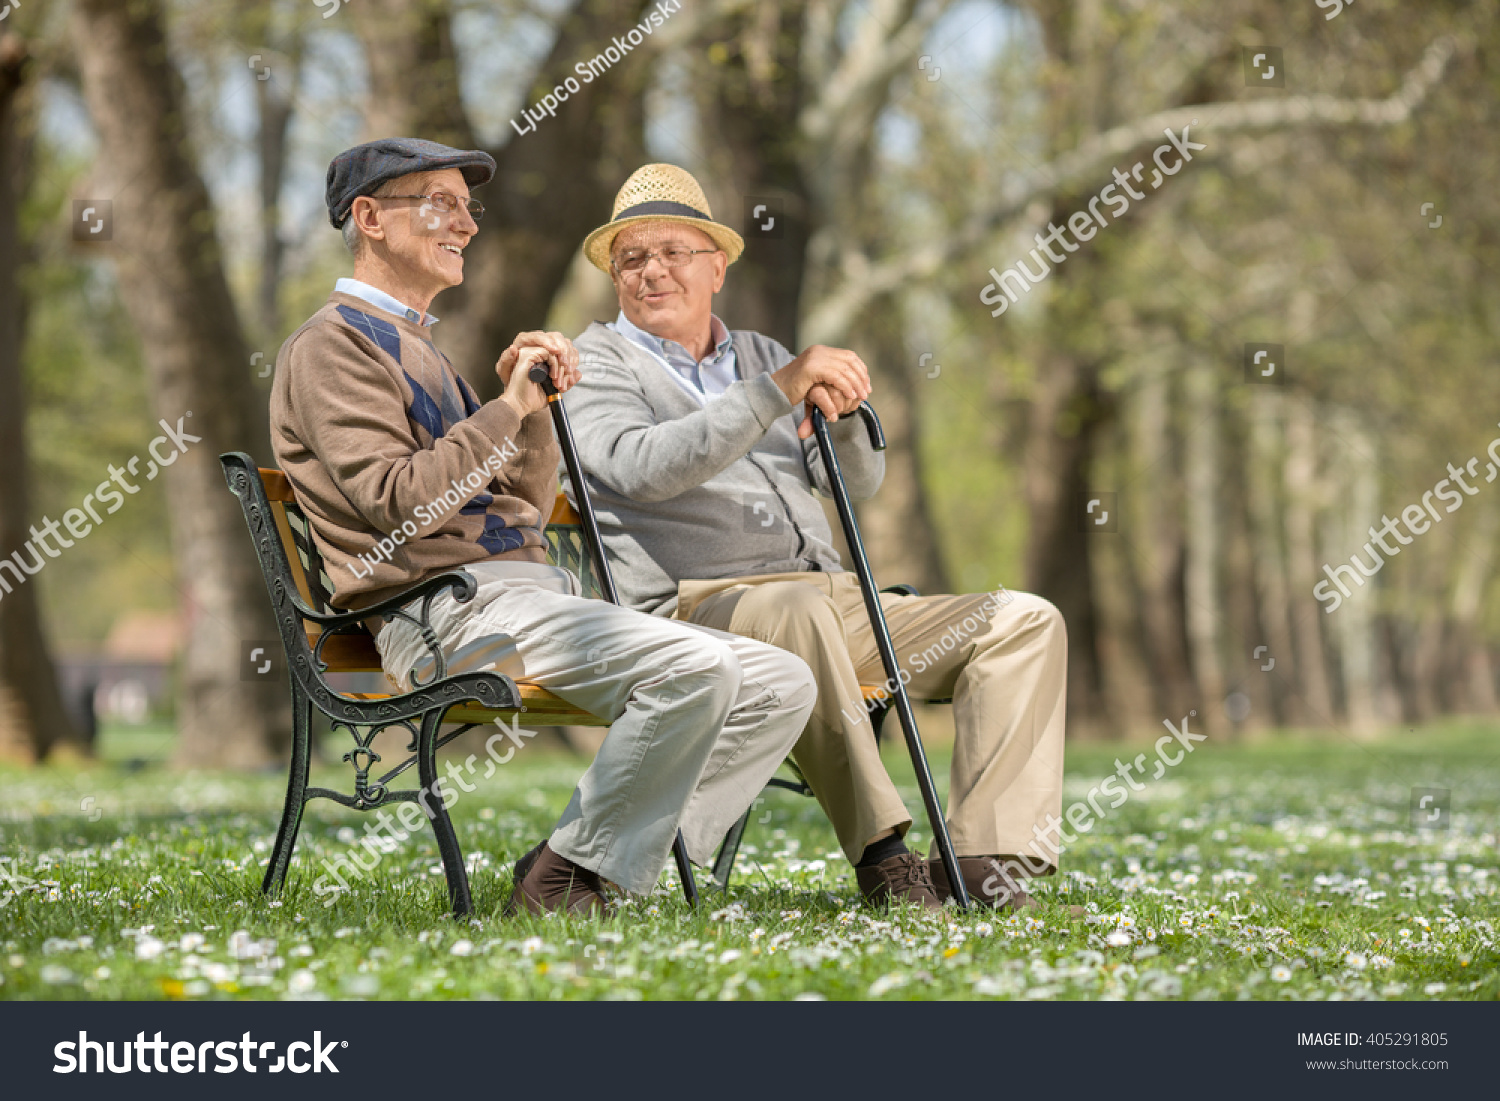 Image result for two old men in the park